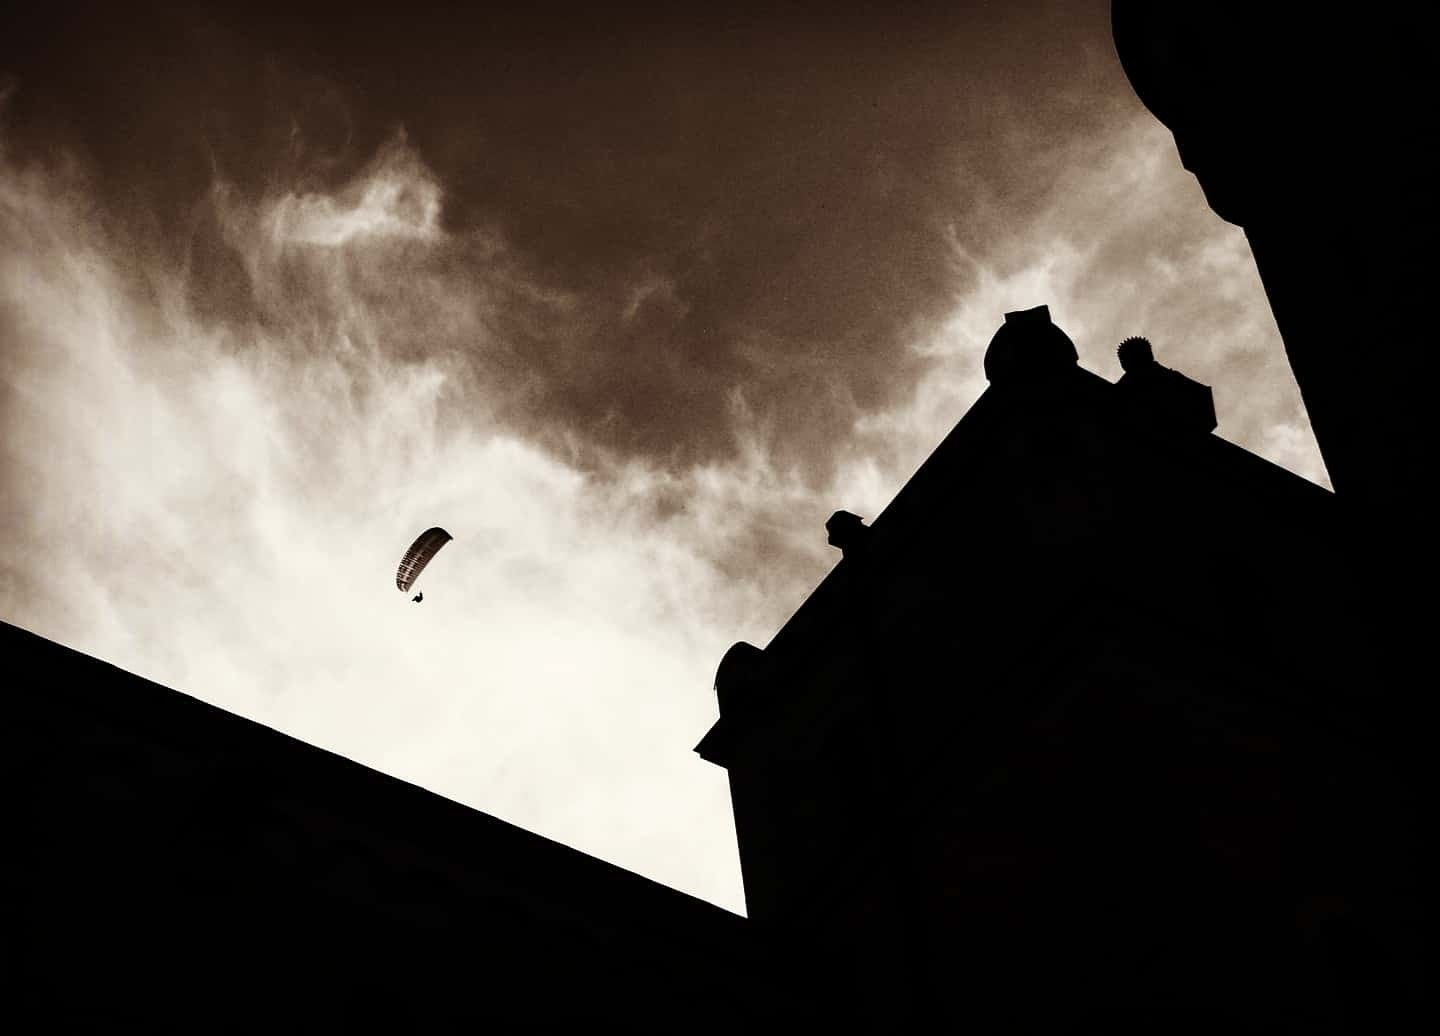 Sometimes the nice surprizes are up in the sky #skyporn #leicaphotography